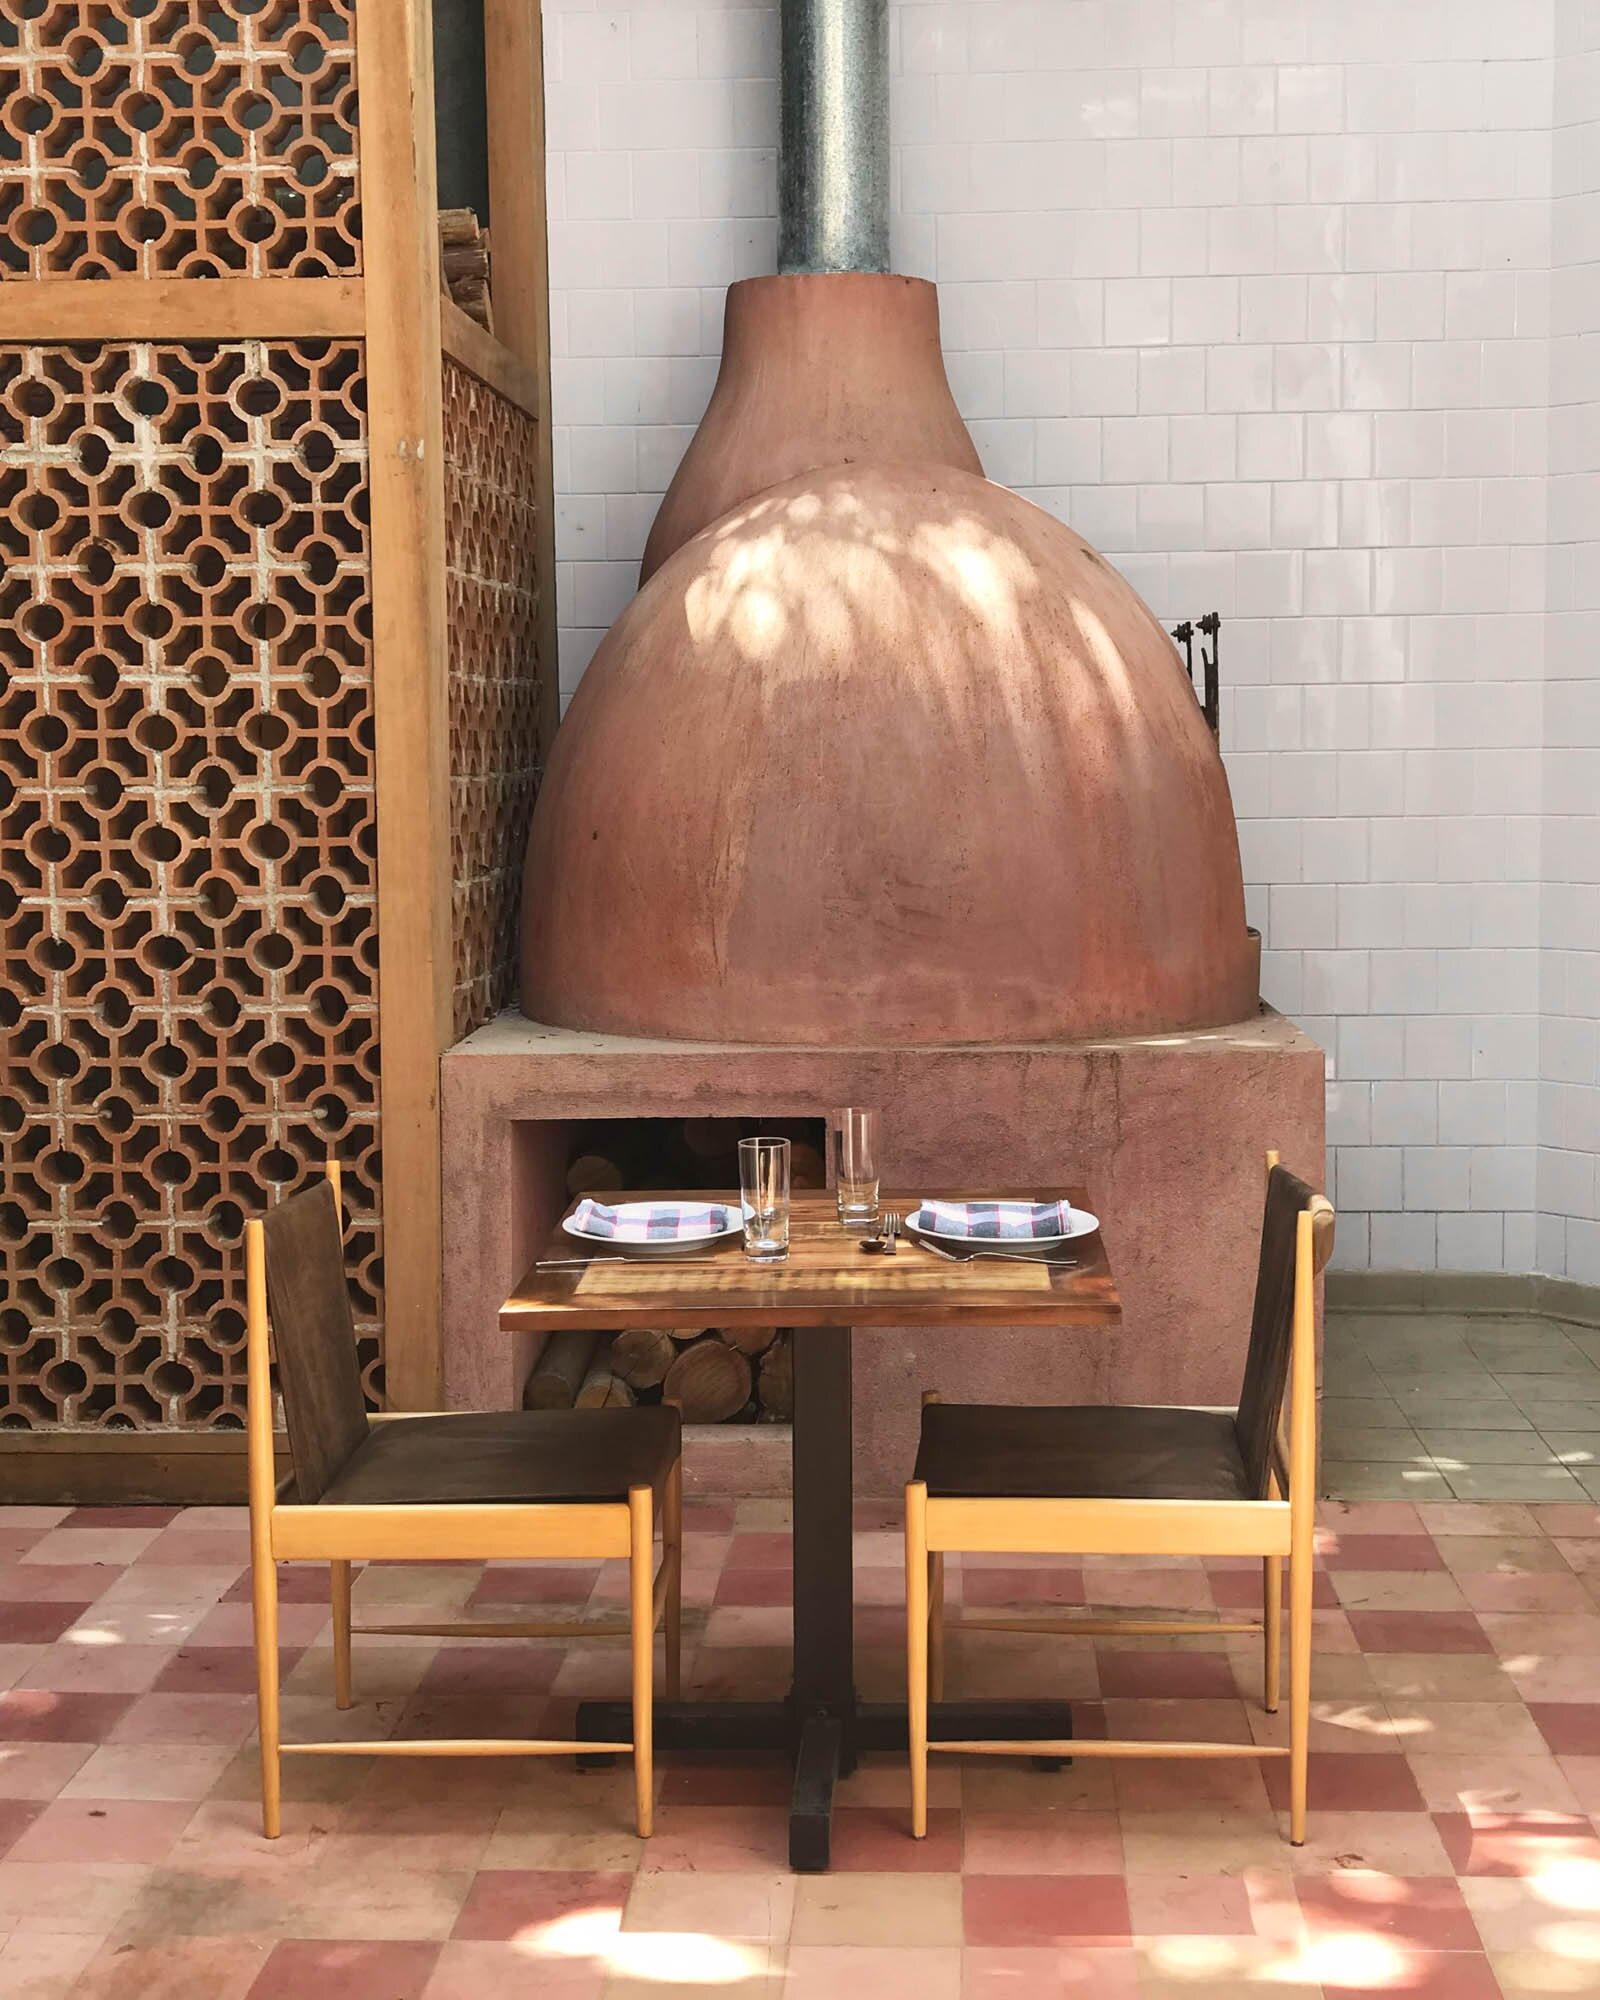 At Sud in Rio de Janeiro, a wood-fired oven informs a rustic menu in a small, cozy dining room.